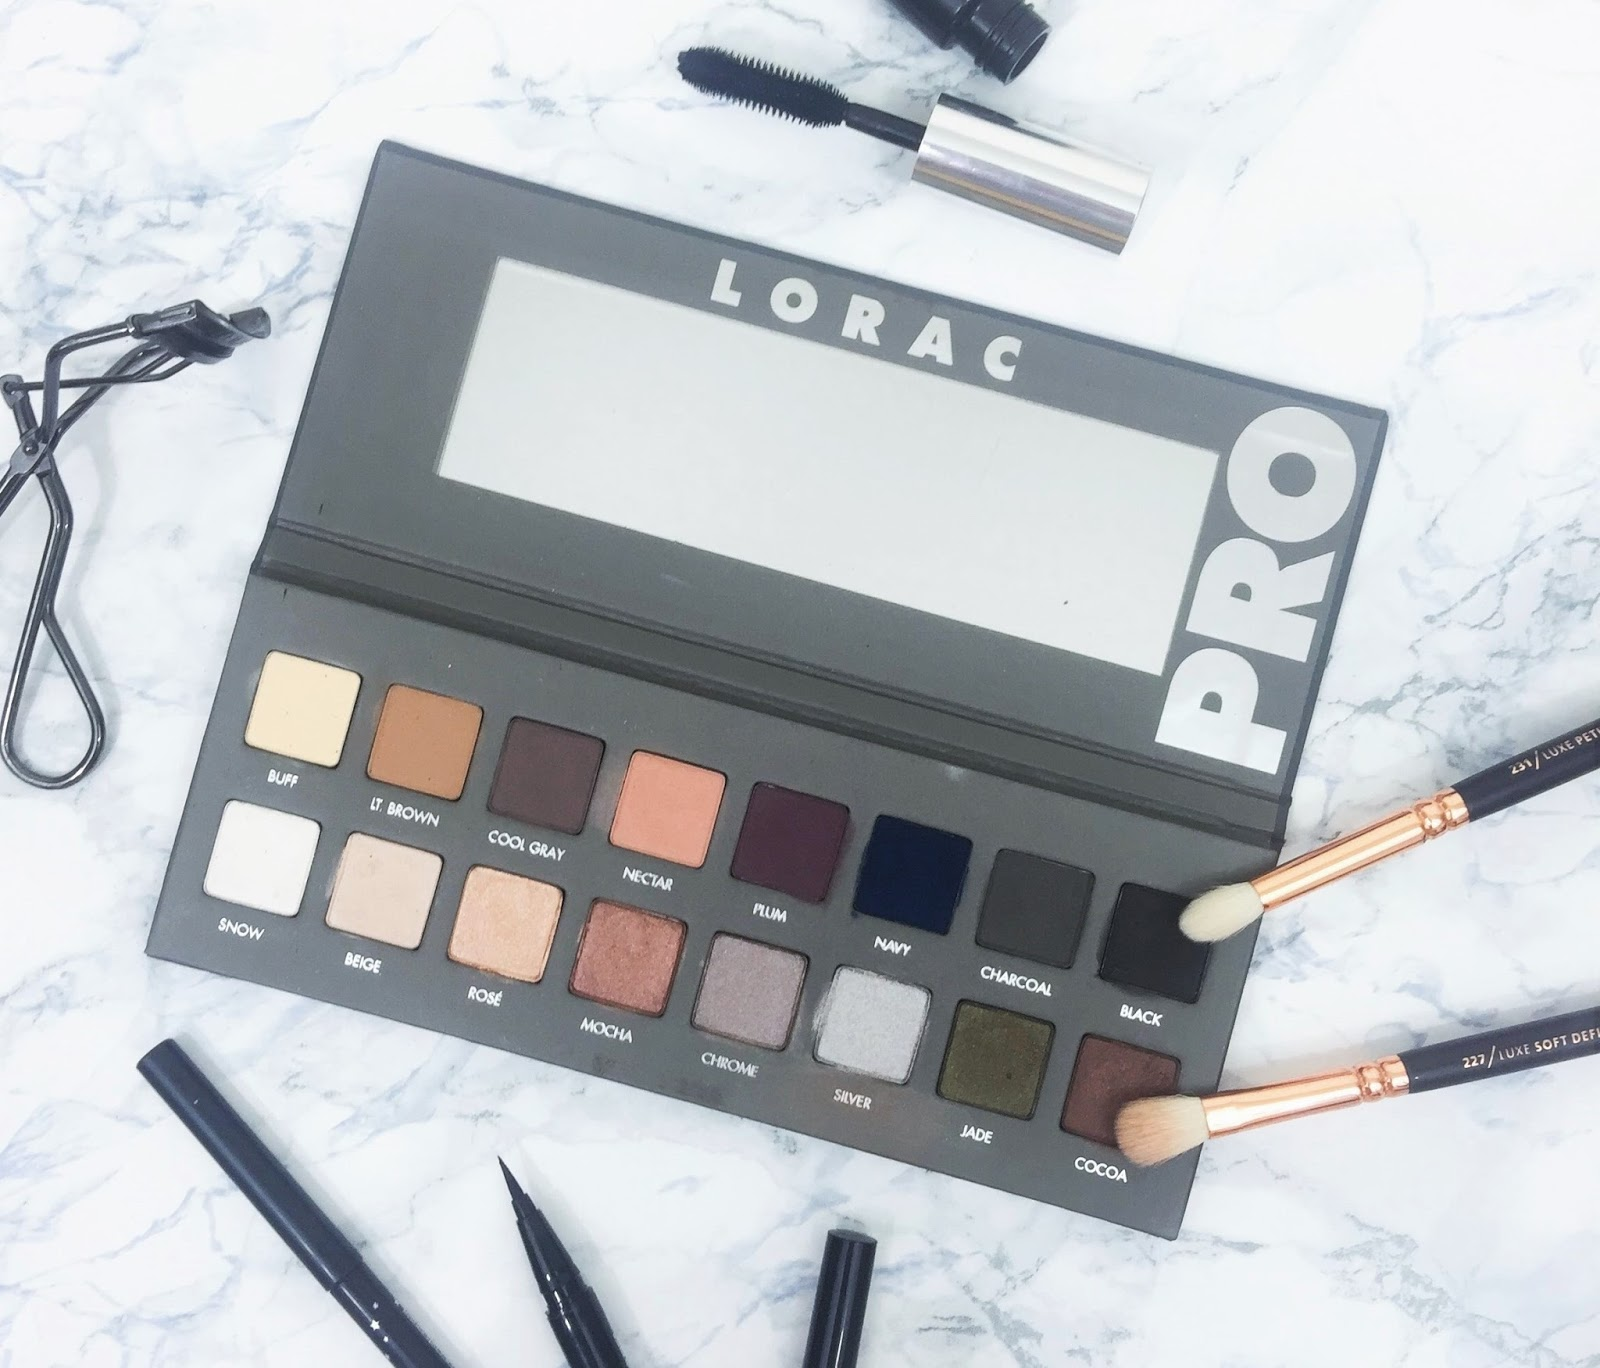 The Lorac Pro 2 Palette Review